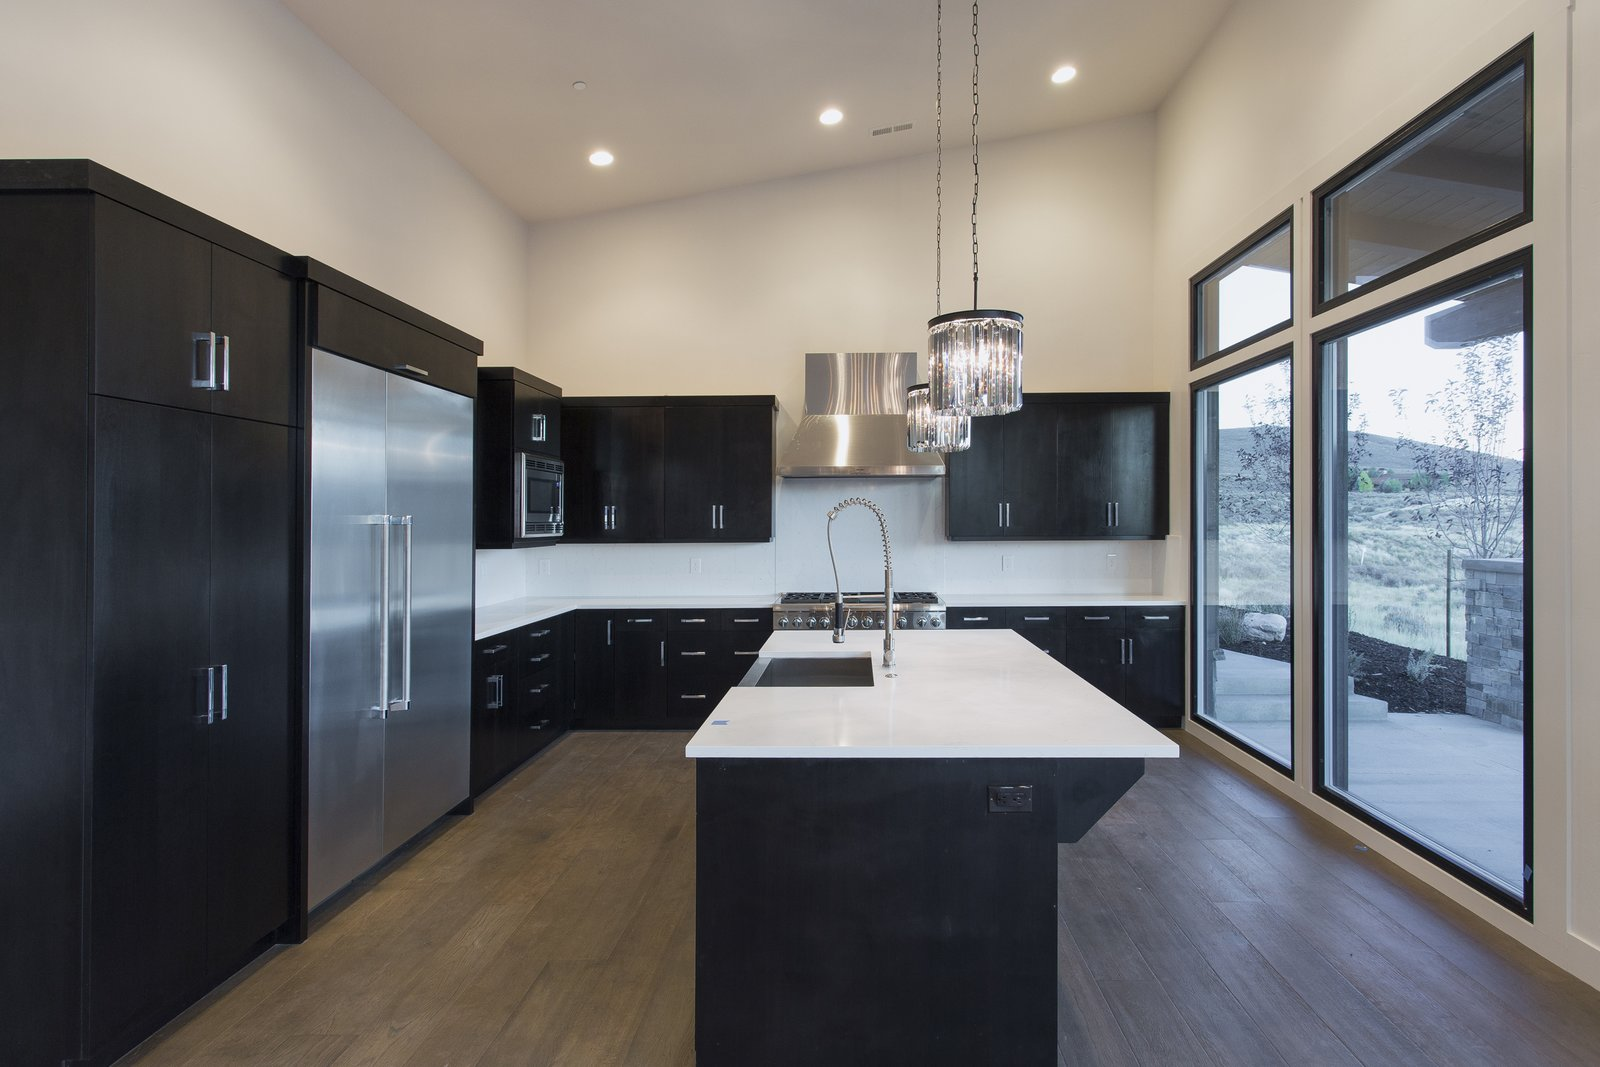 Palisades 14 by The Muve Group